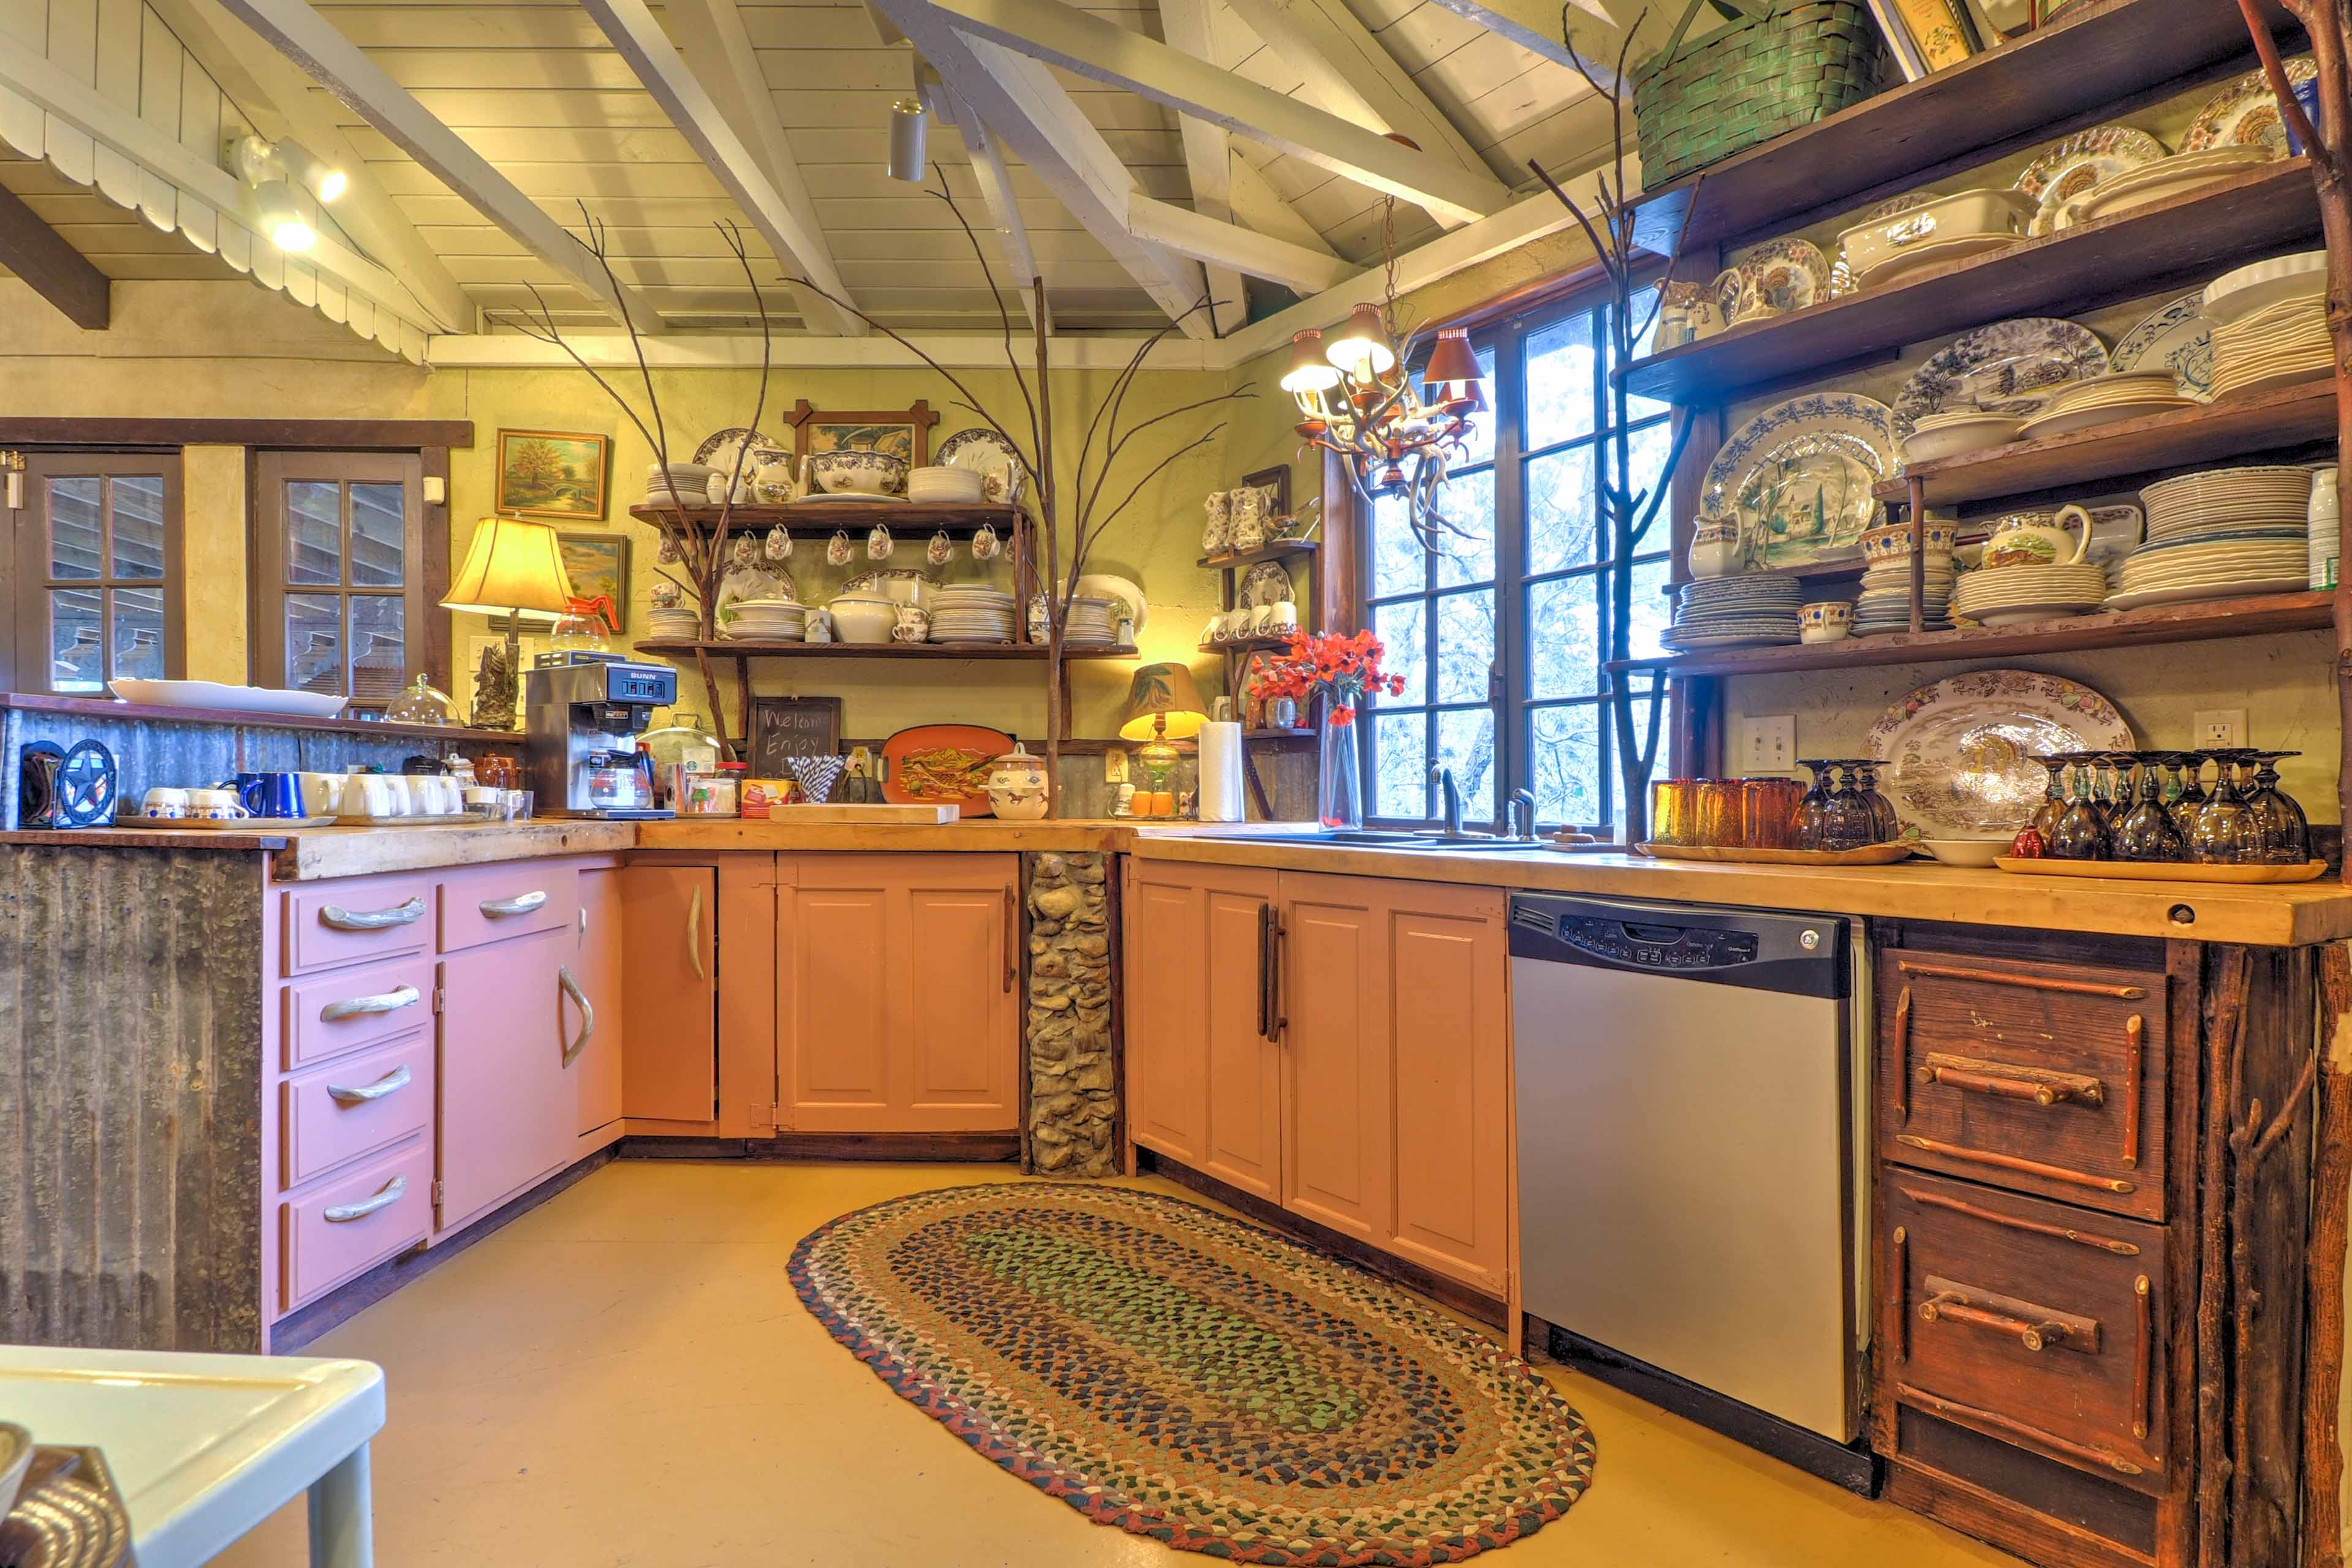 The fully equipped kitchen is perfect for any chef.